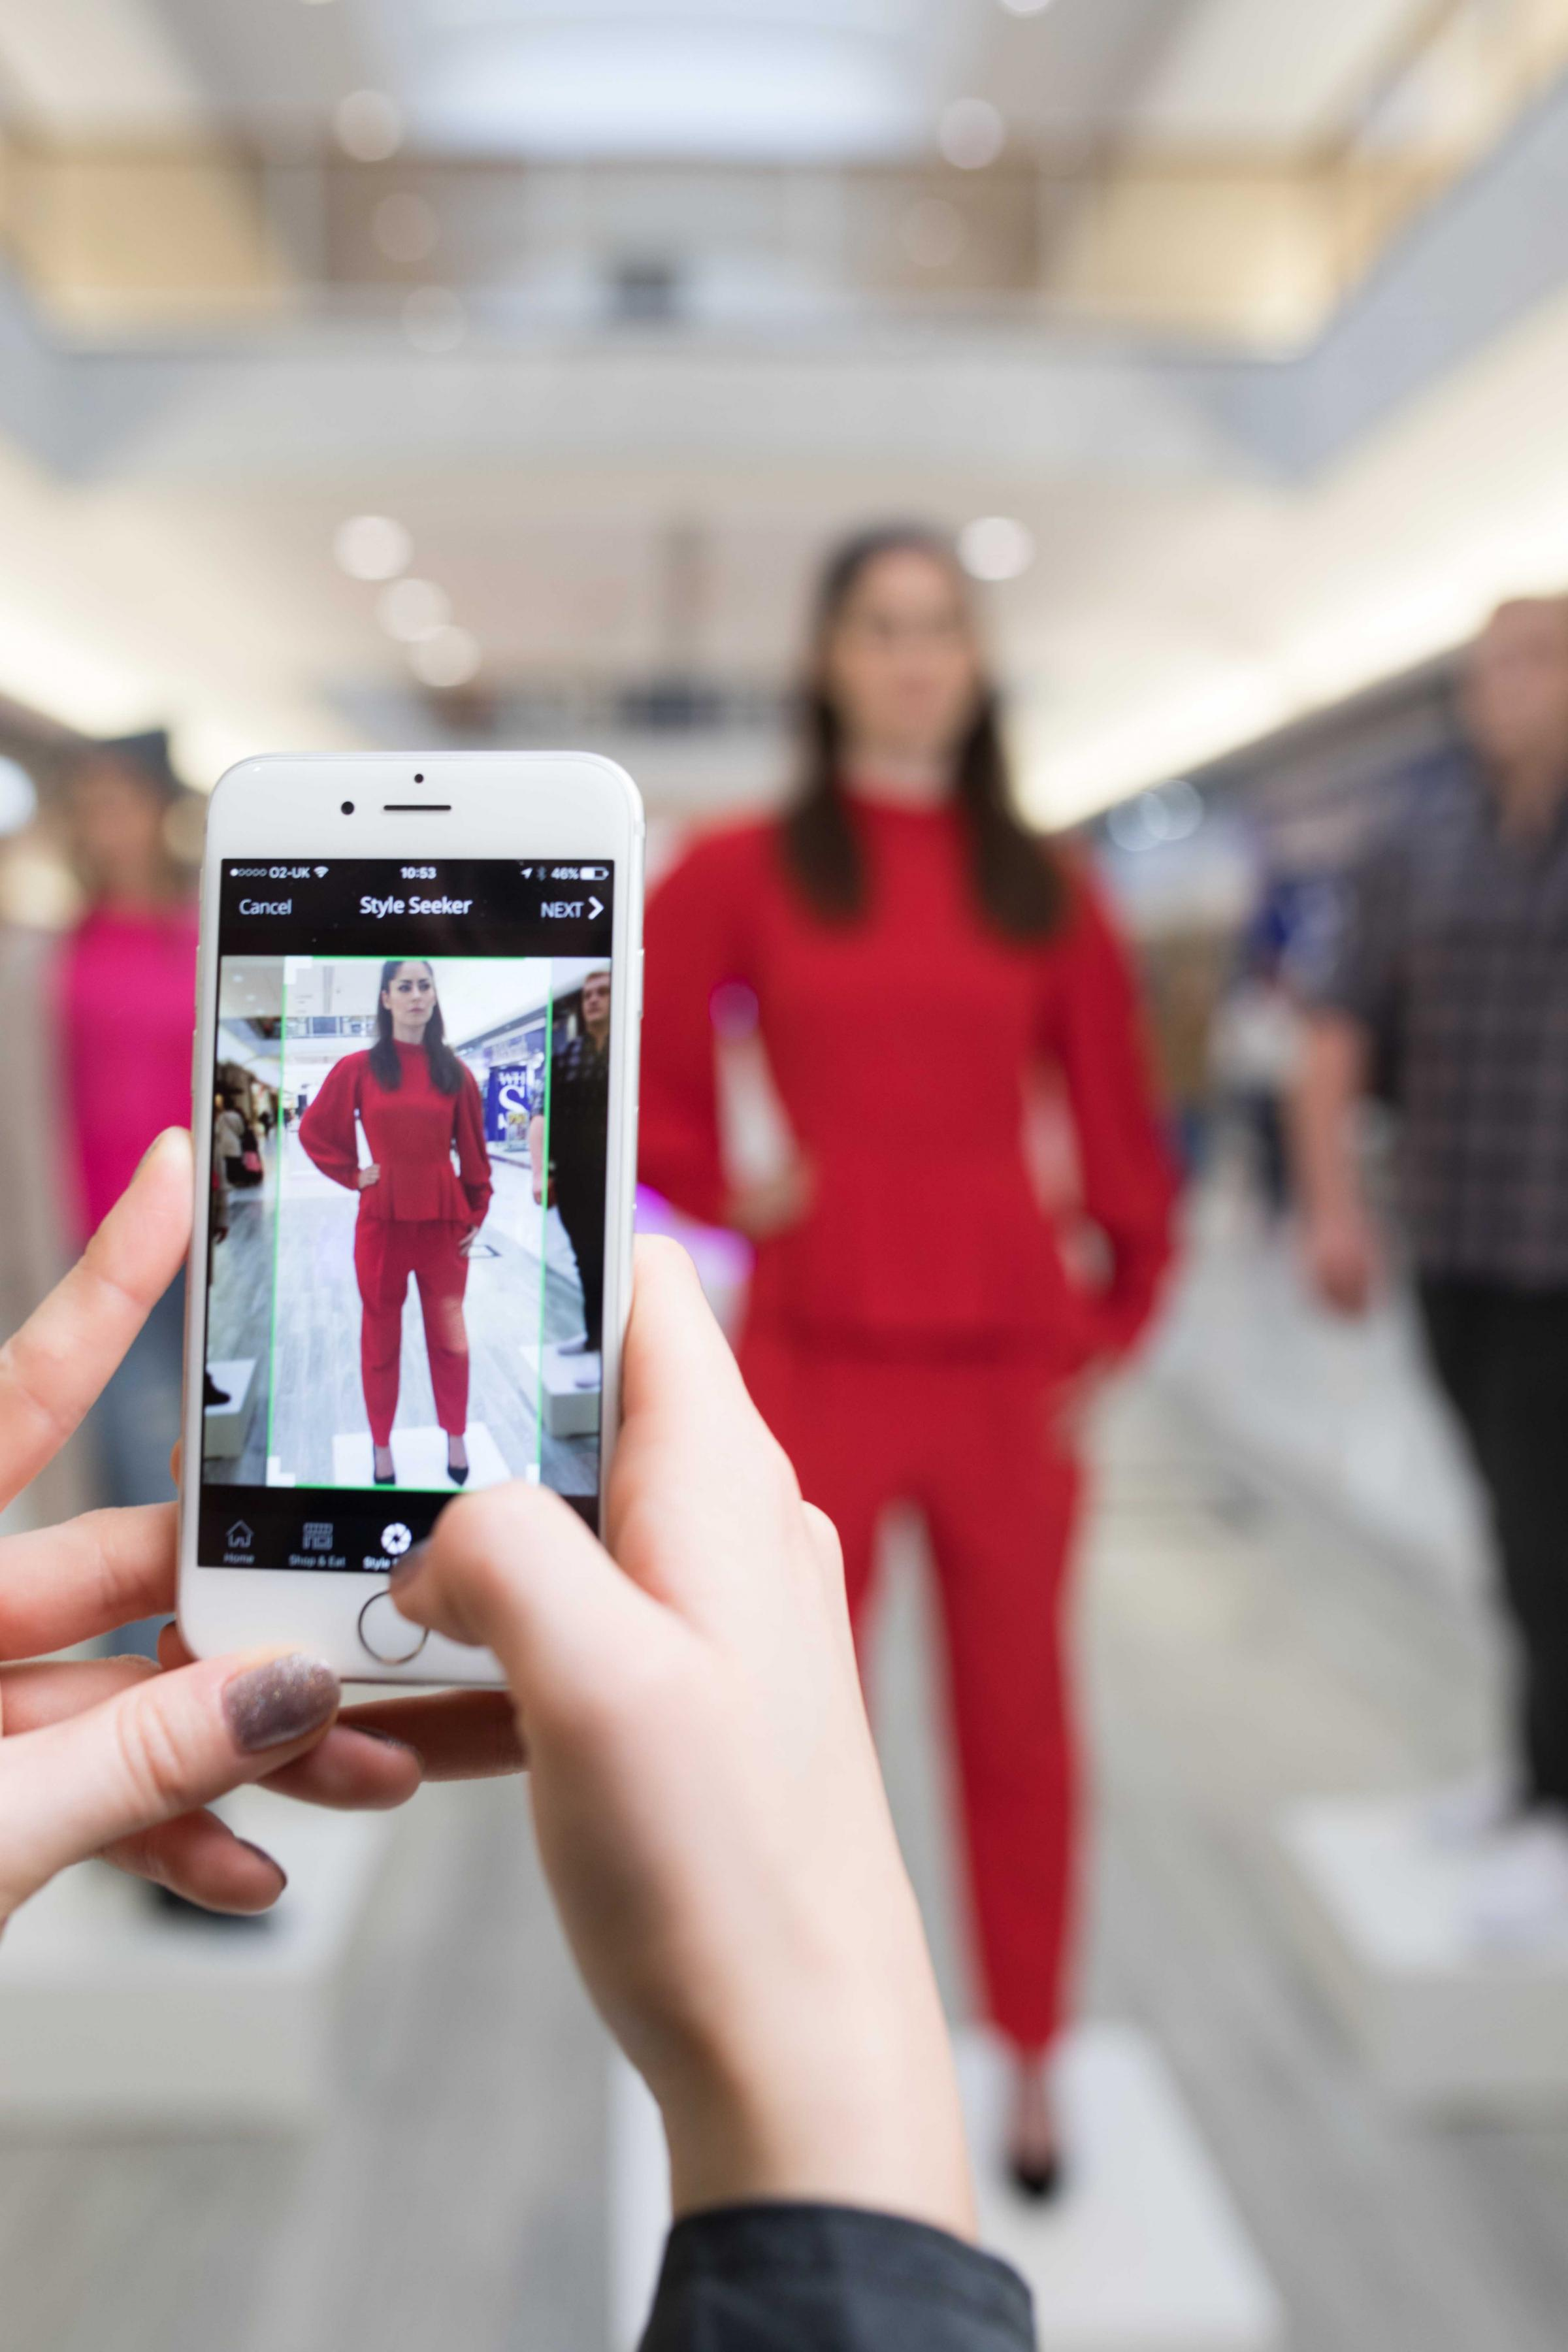 Natalie Goode poses as a mannequin so she can be scanned using the new Style Seeker app (Photo: Press Association)